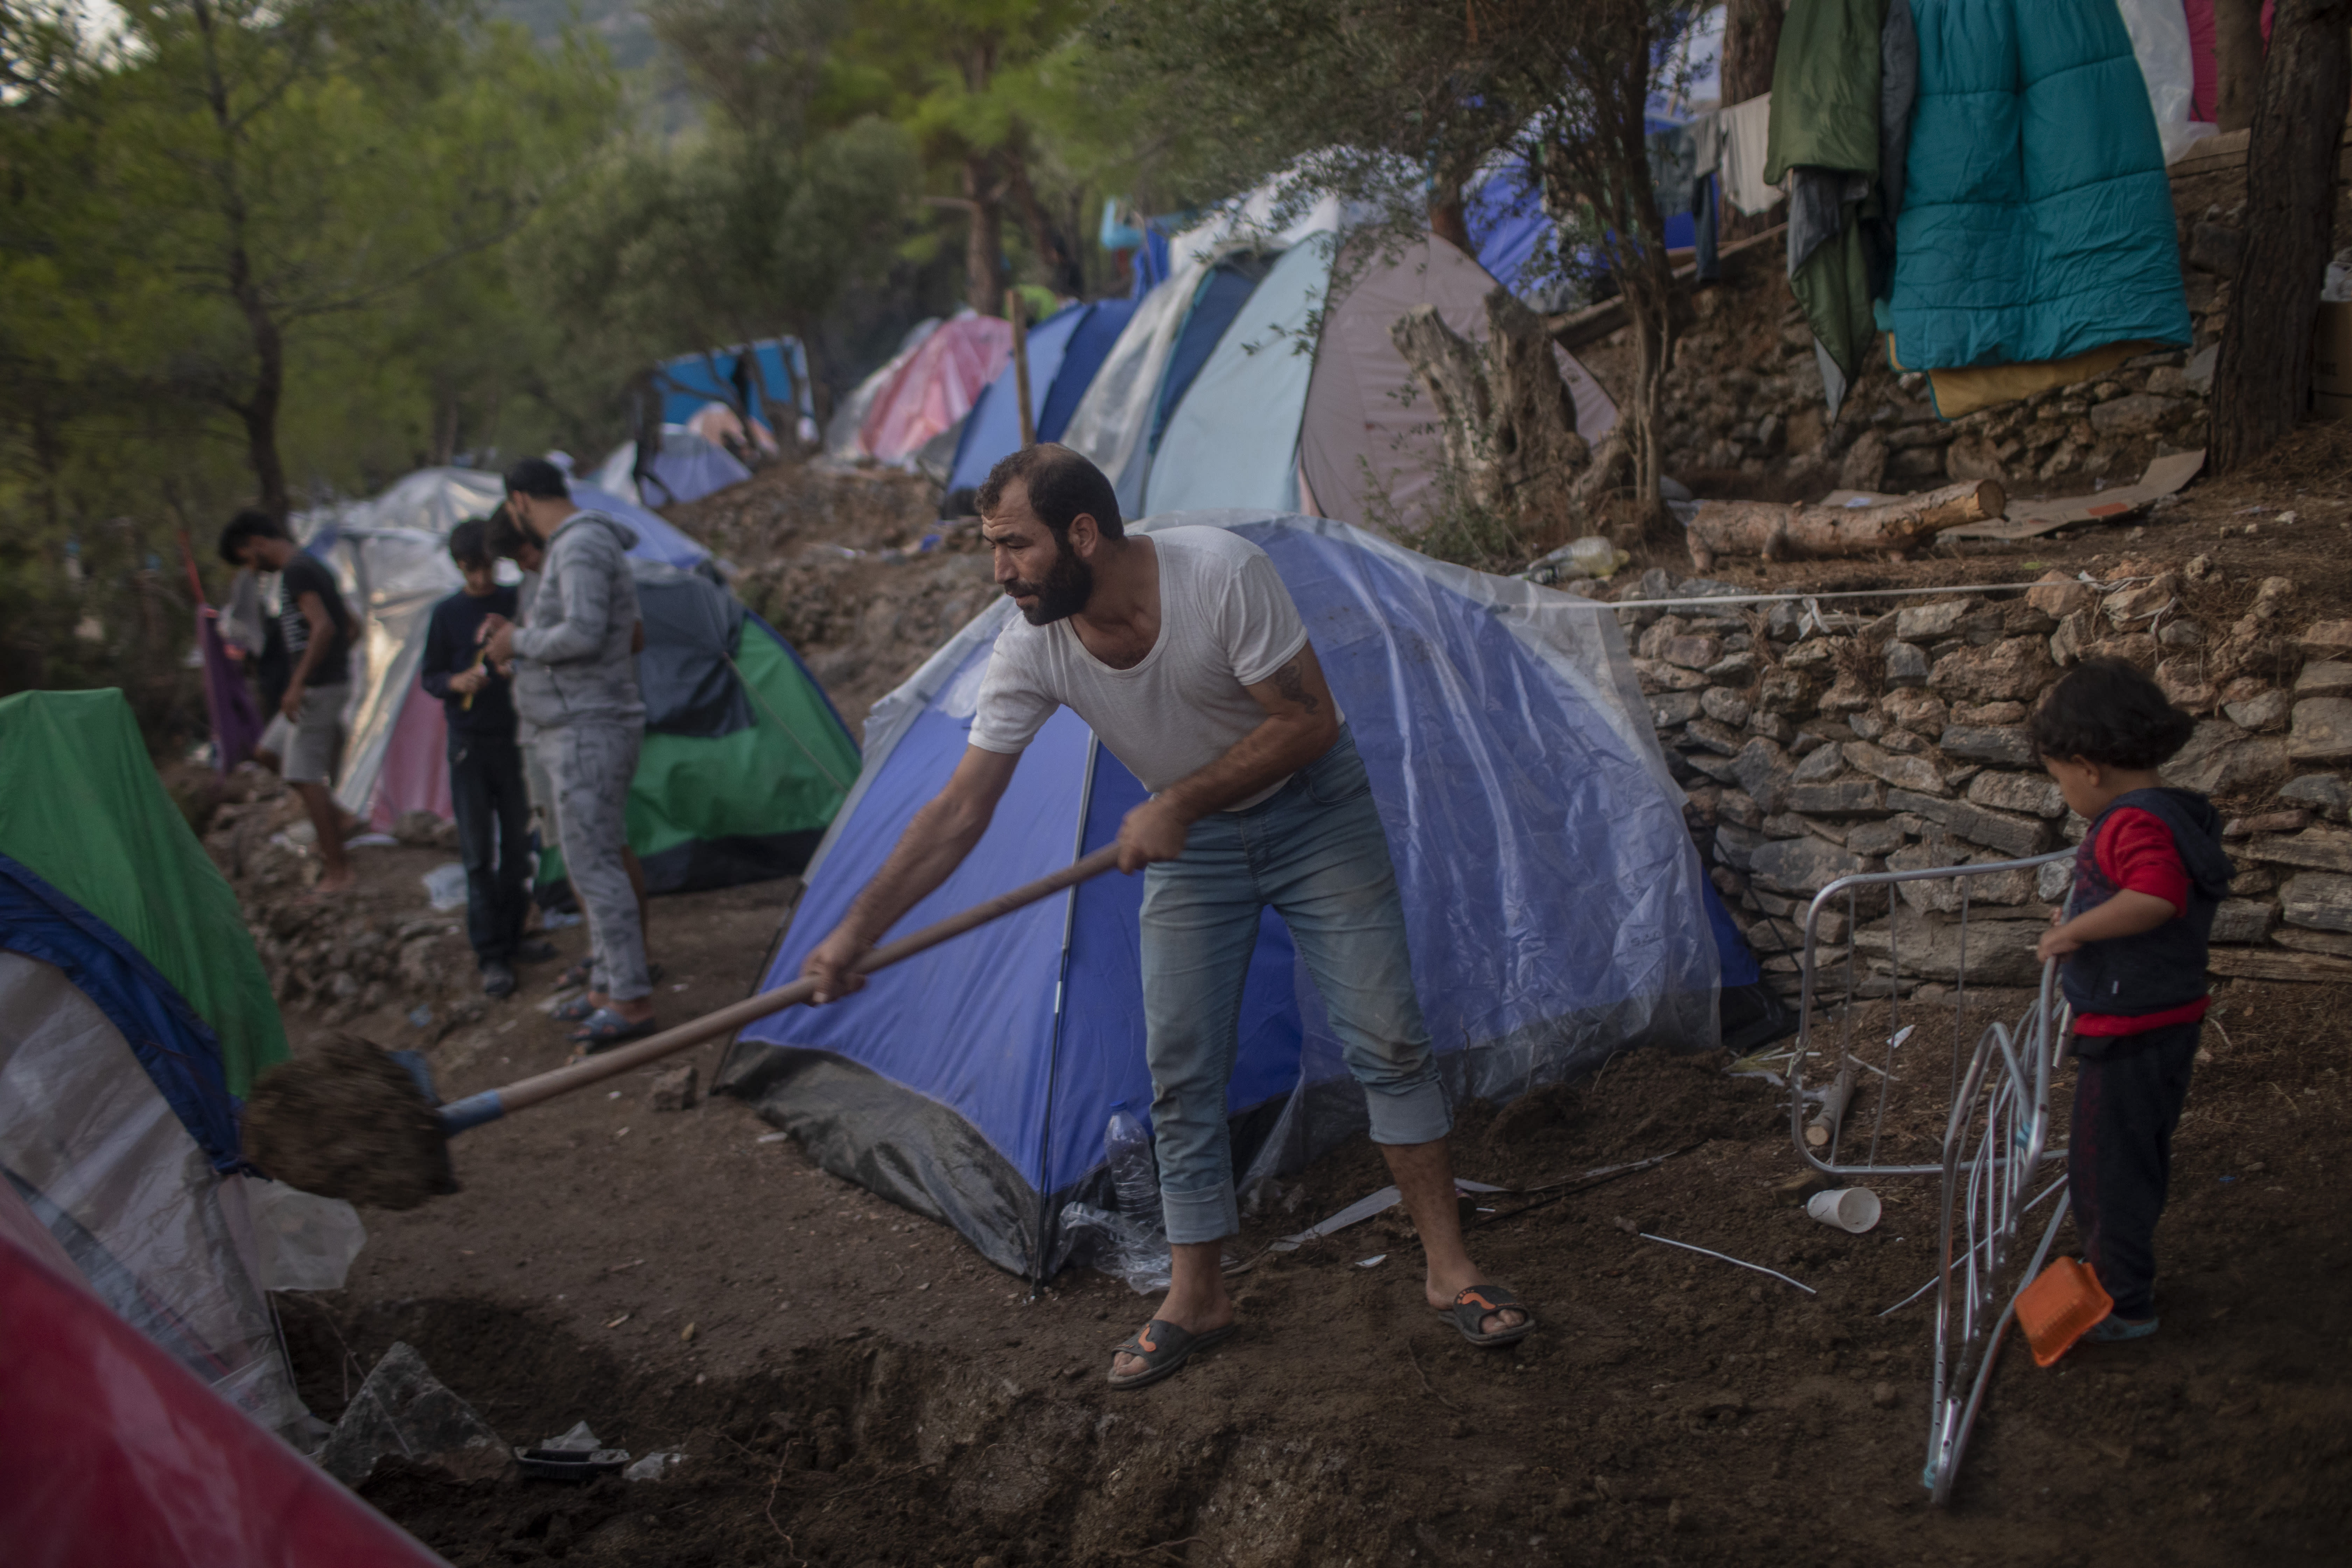 FILE - In this Sept. 25, 2019 file photo, a Syrian man shovels dirt next to his tent near the refugee and migrant camp at the Greek island of Samos island. The head of the U.N. food agency warned of starvation and another wave of mass migration from Syria to Europe unless donors countries step up financial assistance to the war-ravaged country. (AP Photo/ Petros Giannakouris, File)